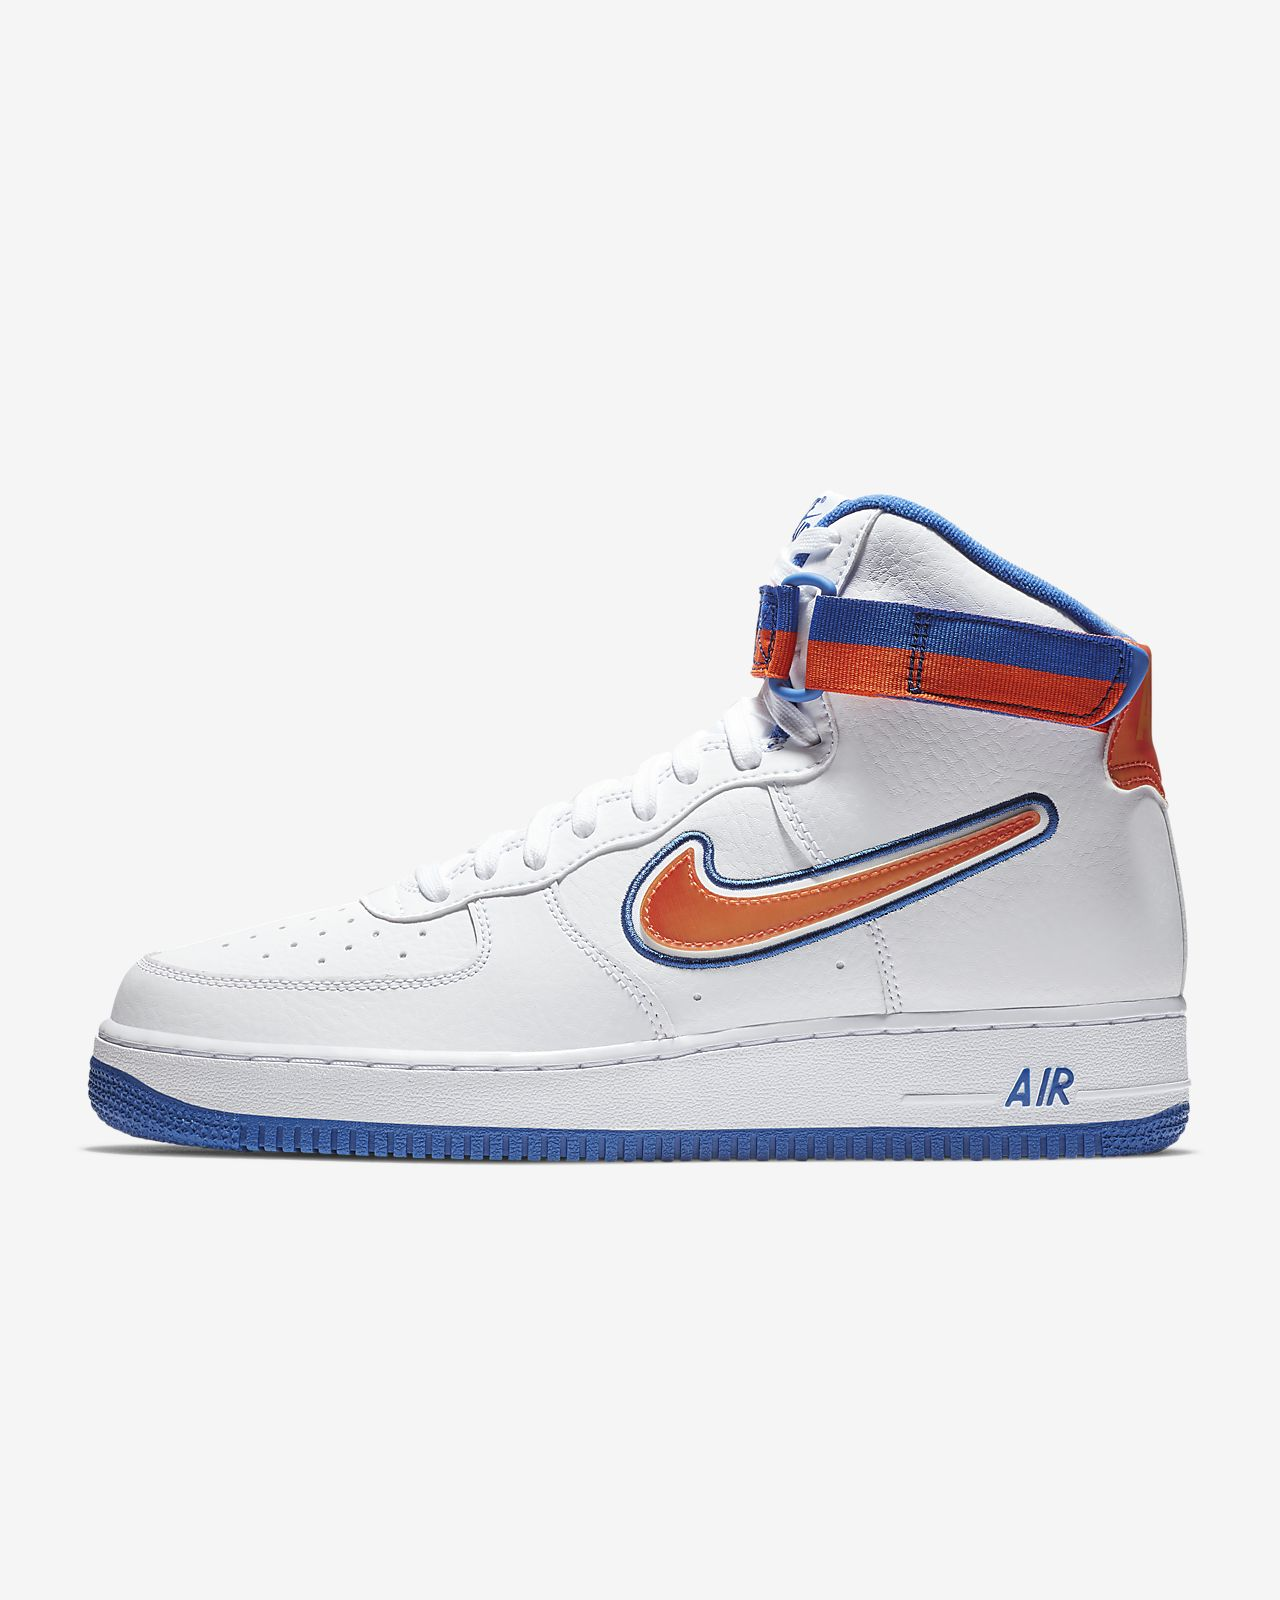 official photos 8cb66 a7fe7 ... Nike Air Force 1 NBA High (New York Knicks) Men s Shoe